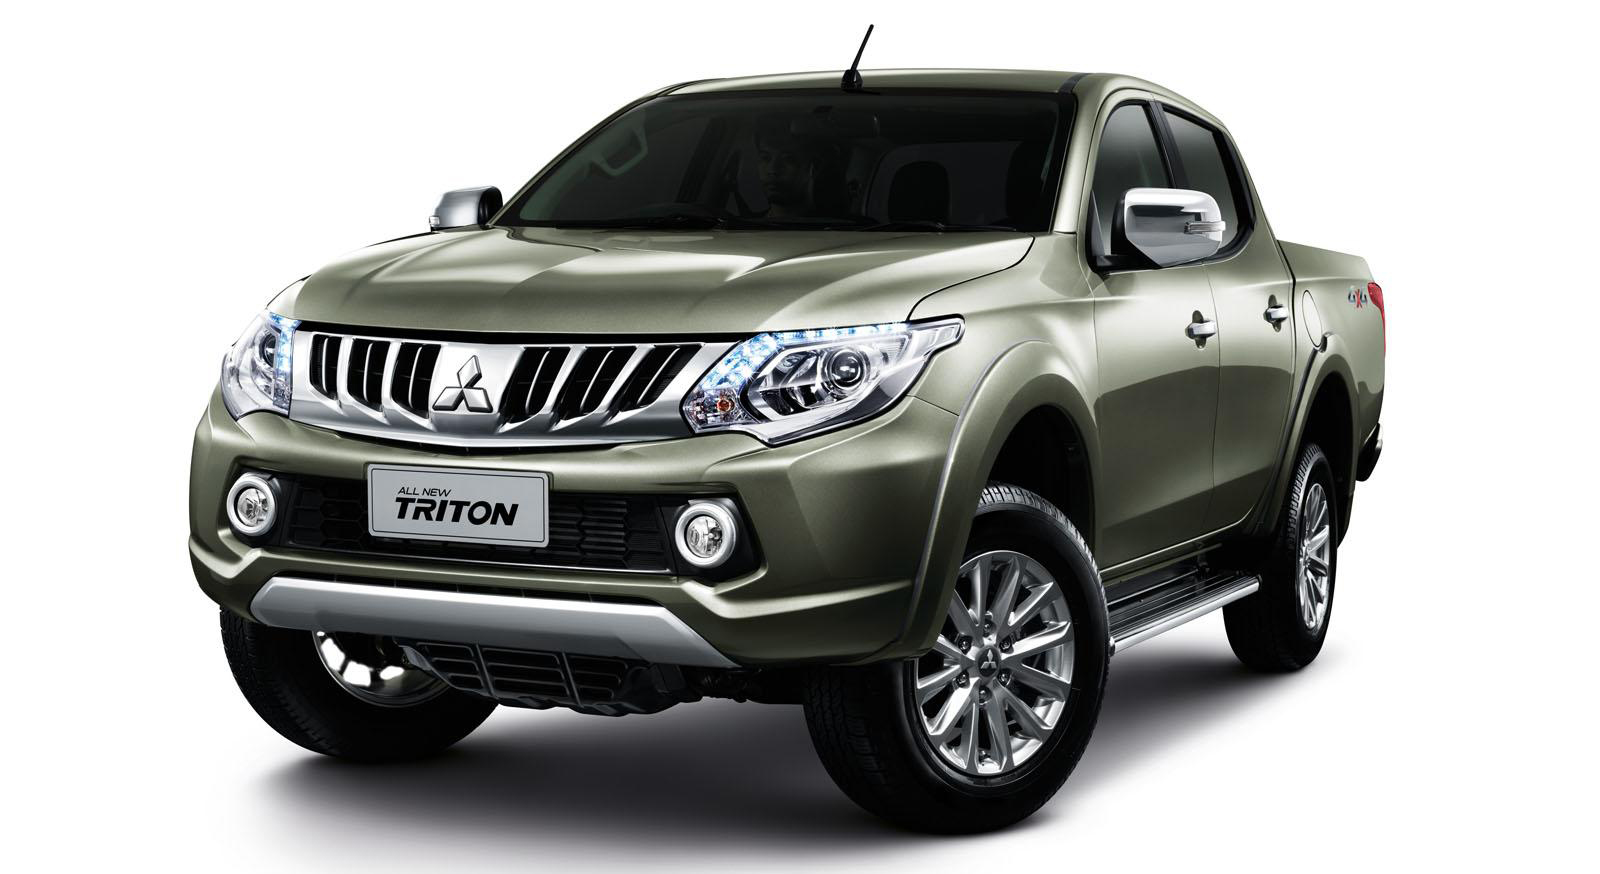 Back to Story: 2015 Mitsubishi Triton unveiled, gets new 2.4L engine